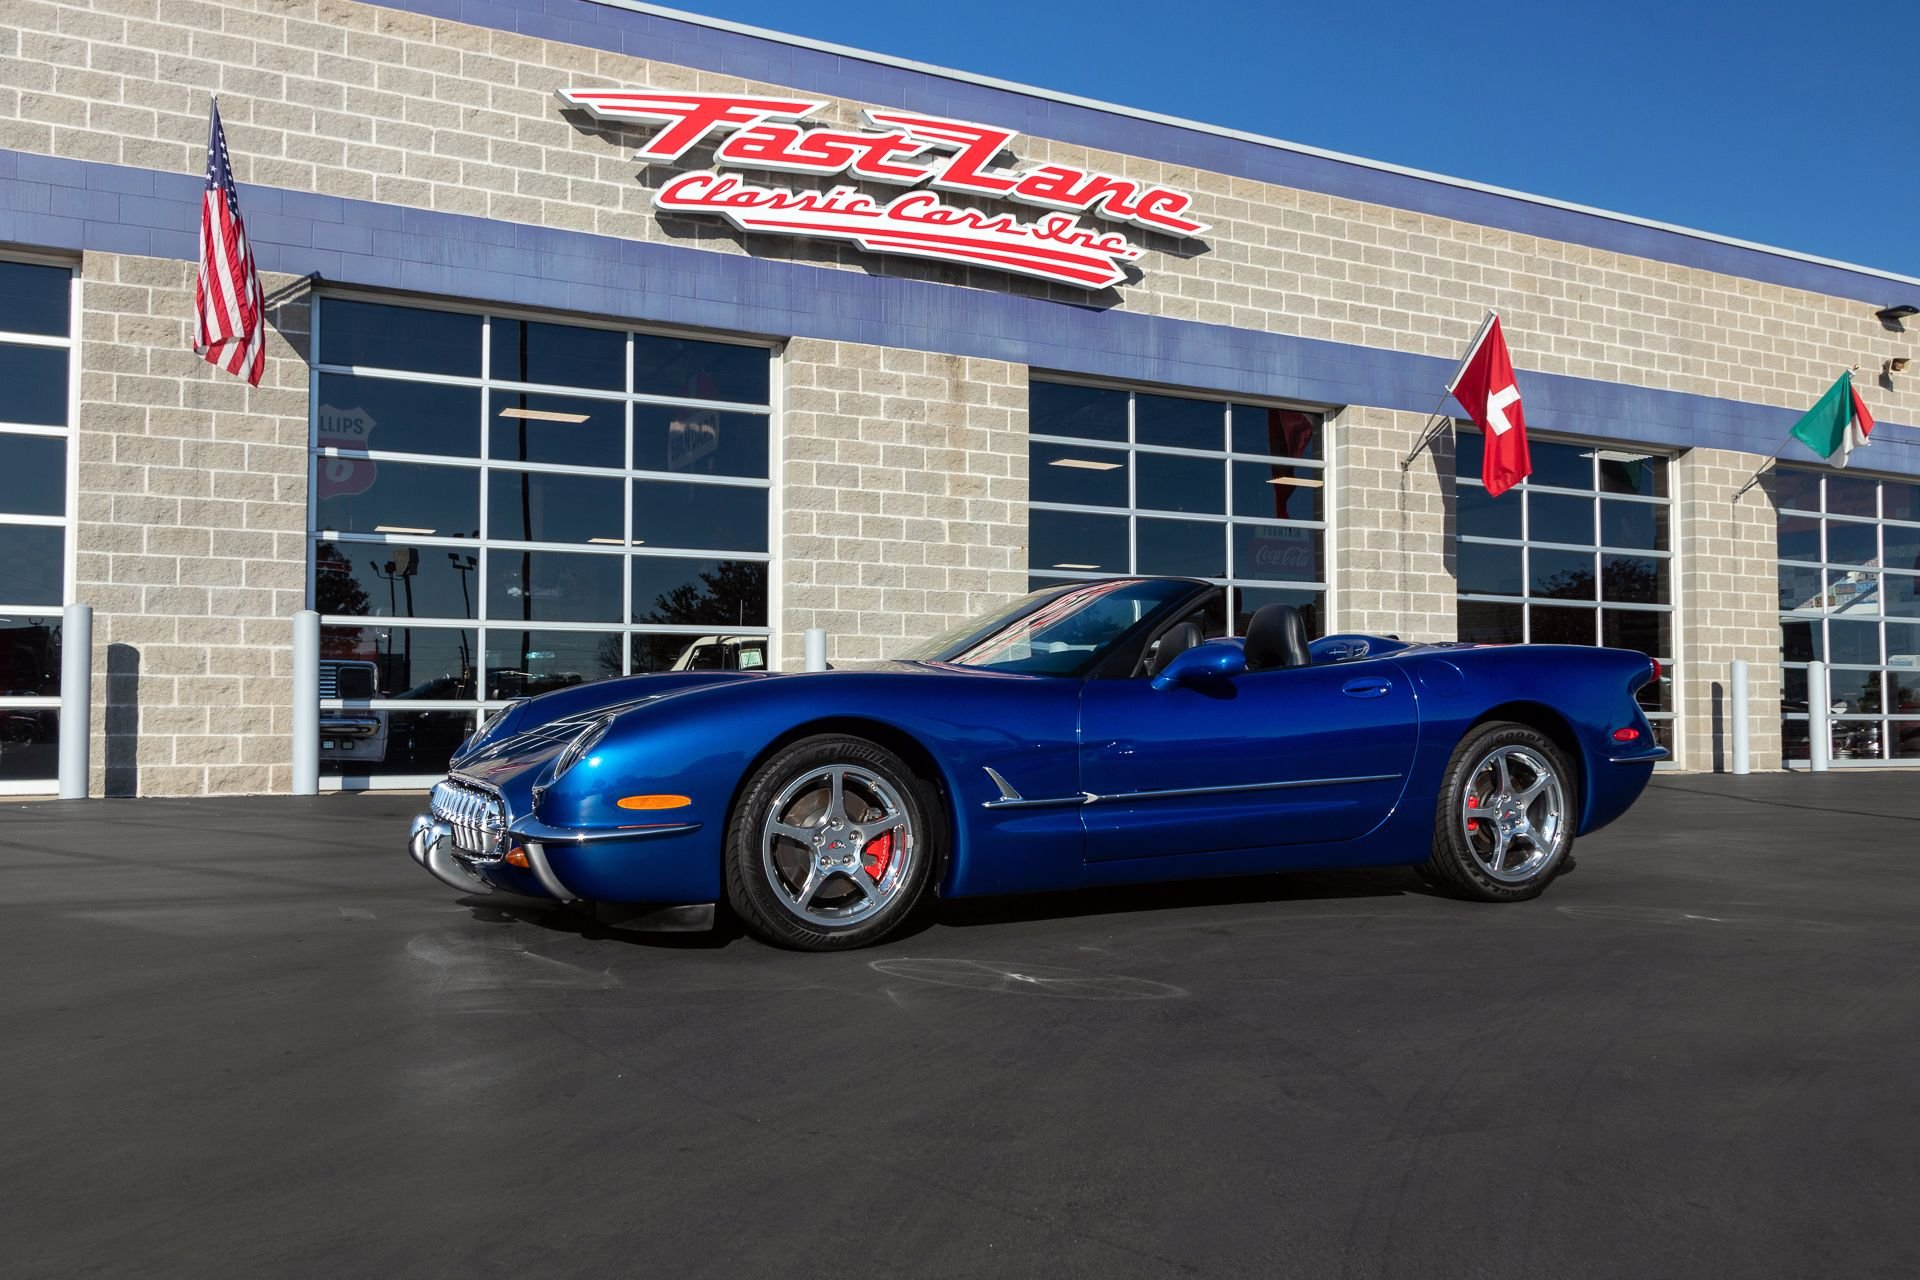 2002 chevrolet corvette commemorative edition